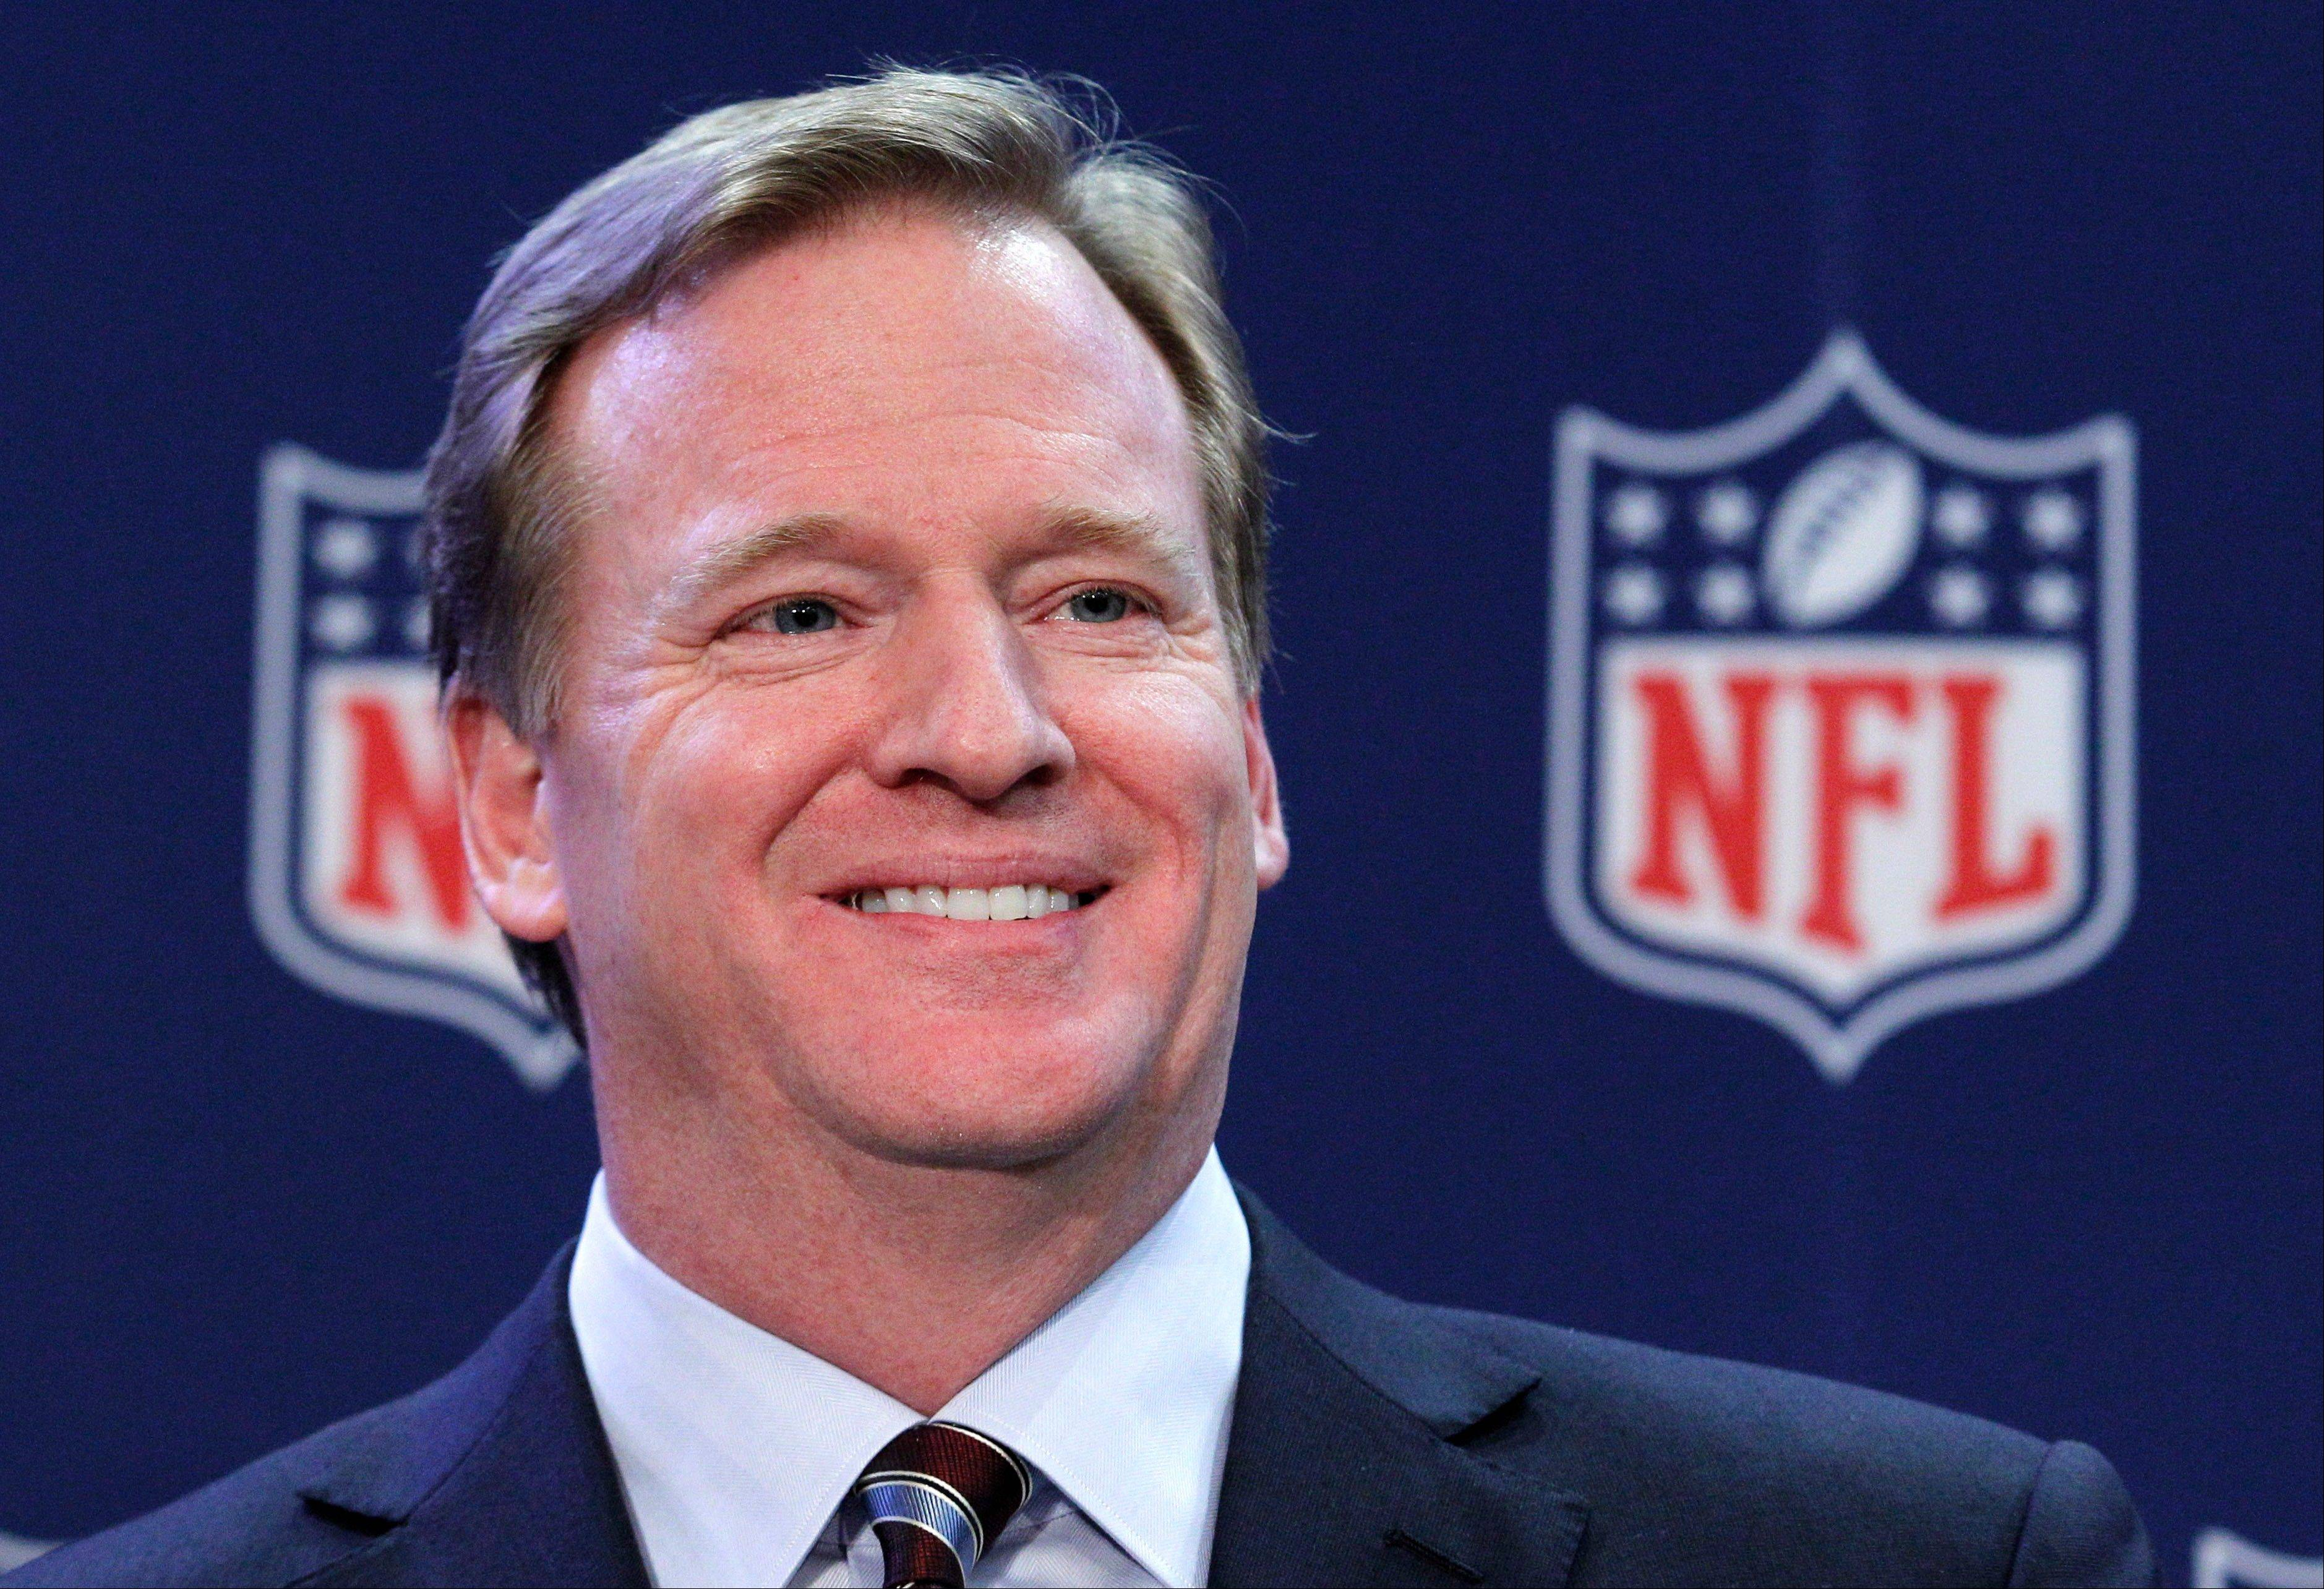 Associated Press/Dec. 12, 2012 NFL Commissioner Roger Goodell smiles during a news conference after the NFL owners meeting in Irving, Texas. Goodell was paid $29.49 million by NFL owners in 2011, nearly triple his compensation from the previous year. Goodell earned $11.6 million in 2010.